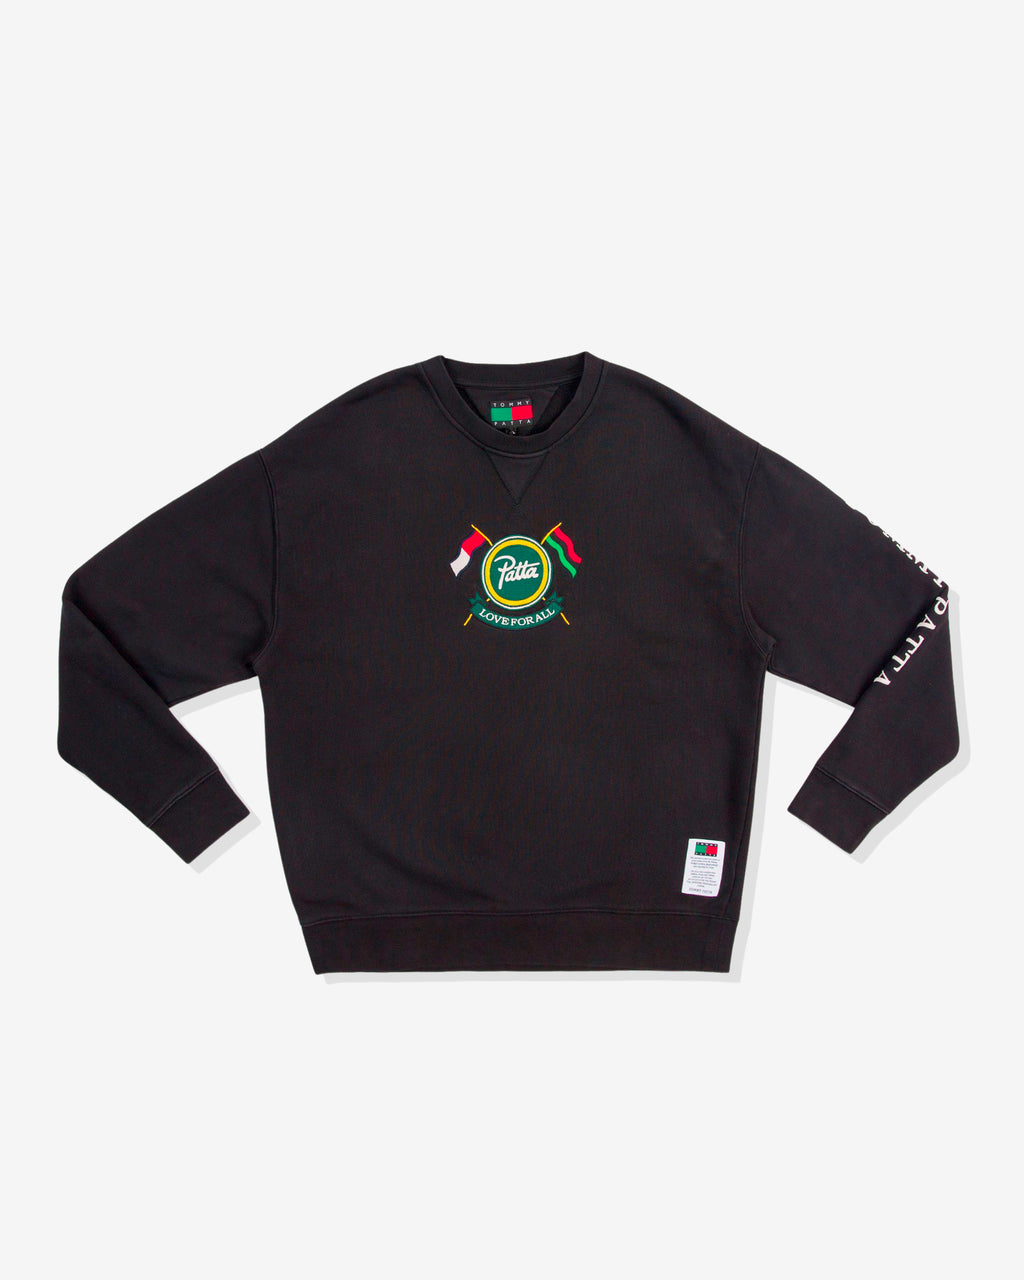 PATTA X TOMMY SWEATSHIRT - BLACK